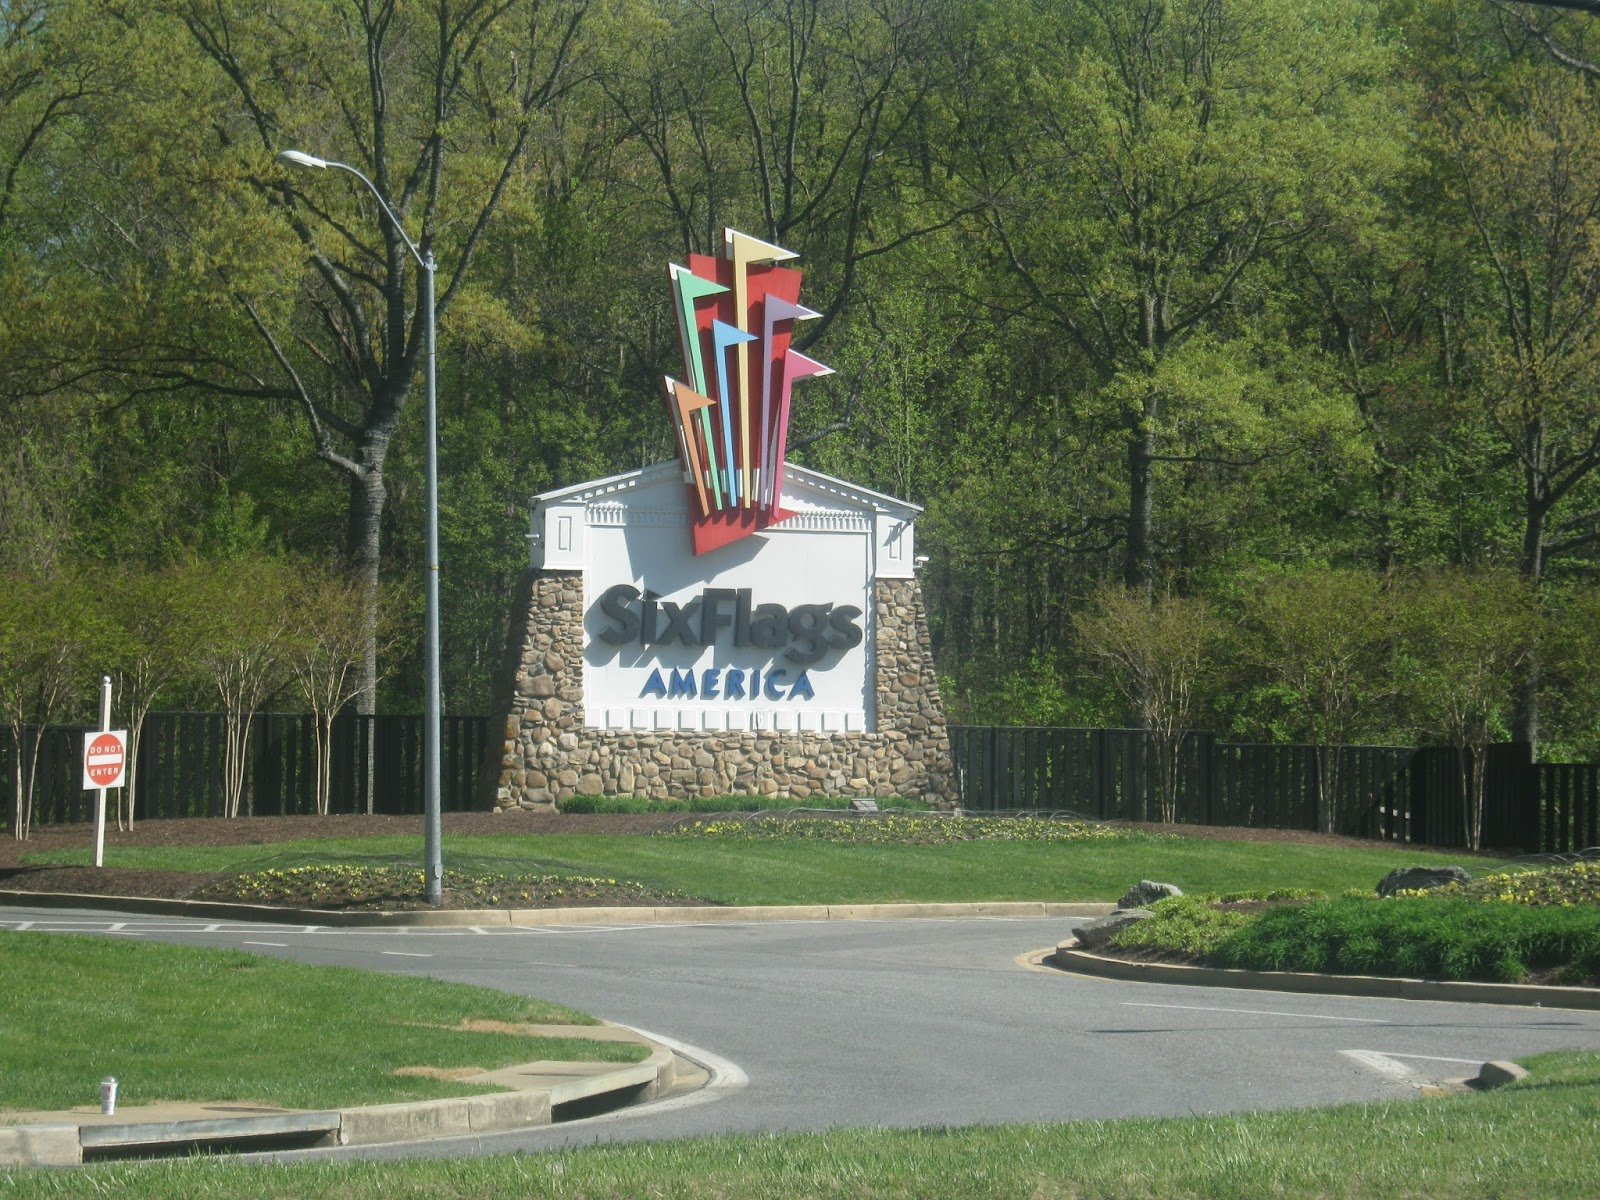 my trip to six flags Use the information on this page to help you plan your trip using a newsletter and we'll let you know immediately if you've won two tickets to six flags.